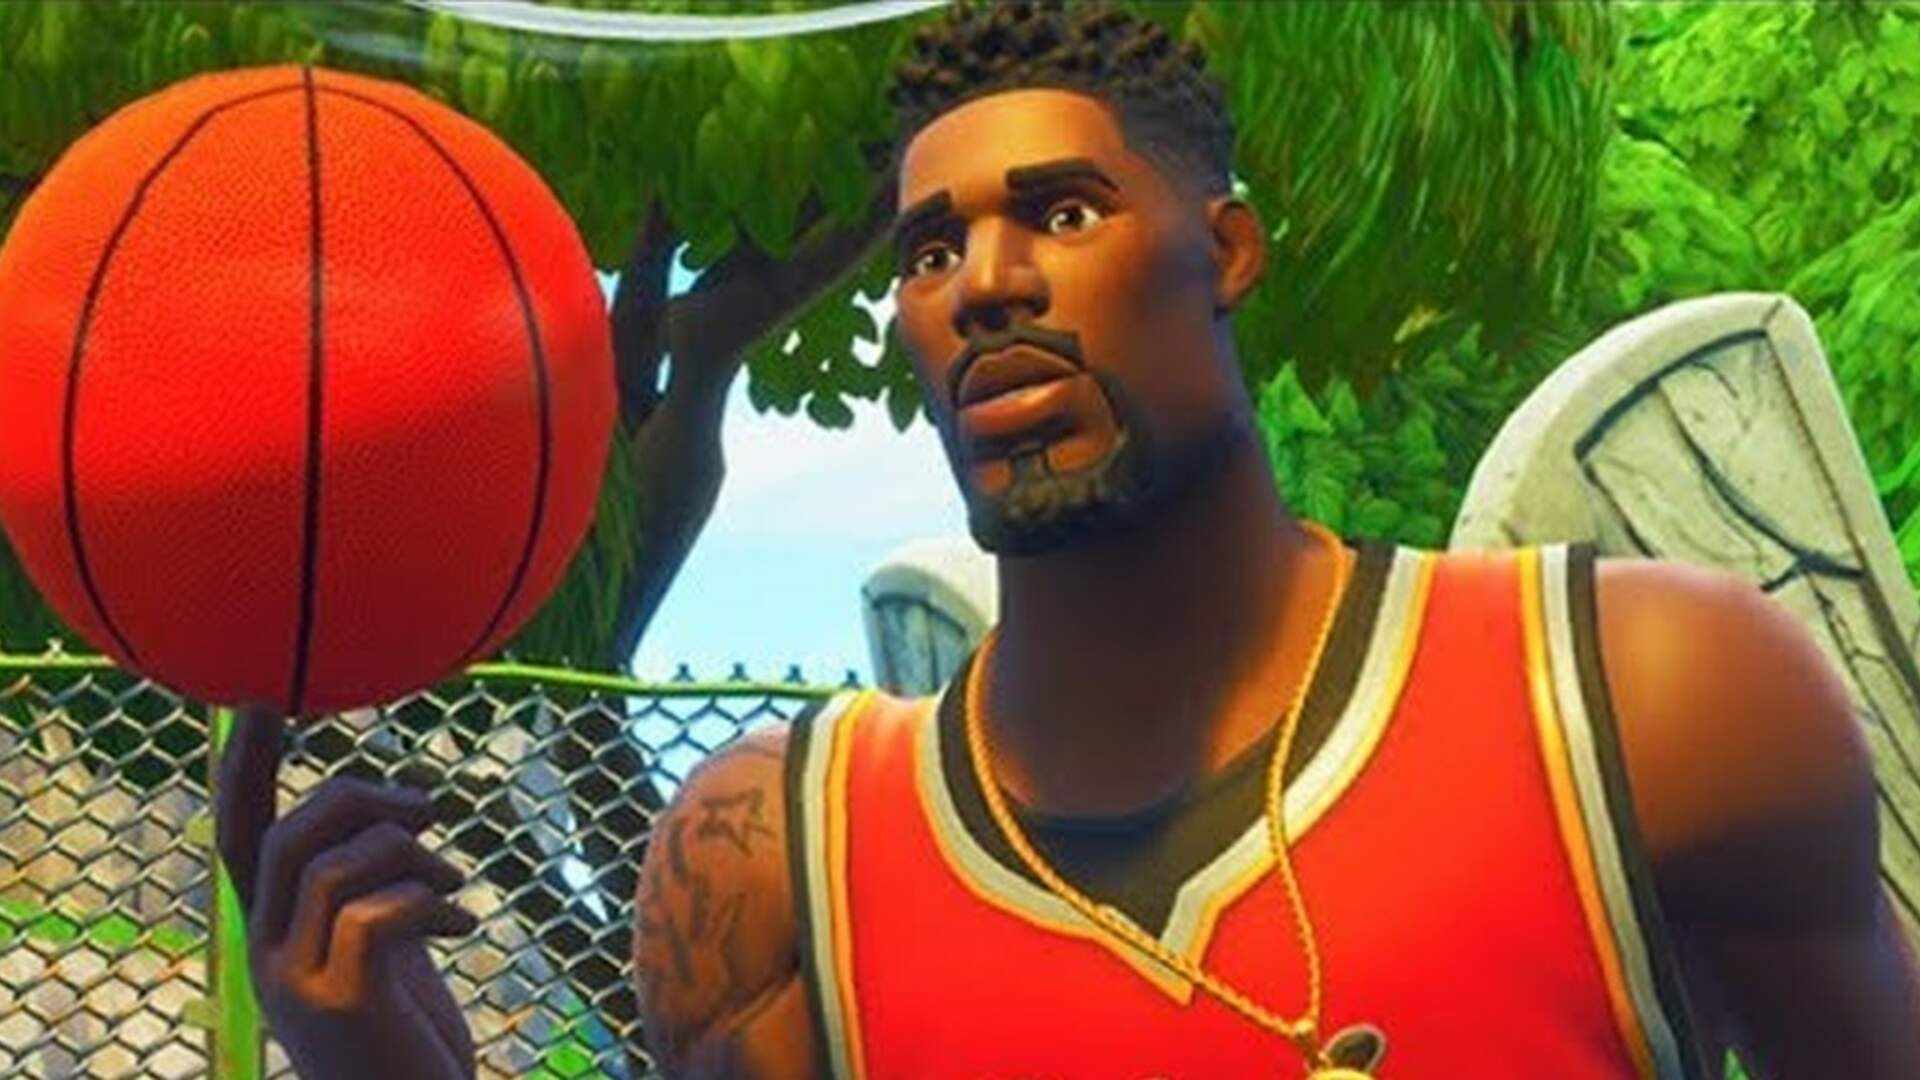 Fortnite Basketball Court Locations - Score a Basket on Different Hoops Fortnite Challenge